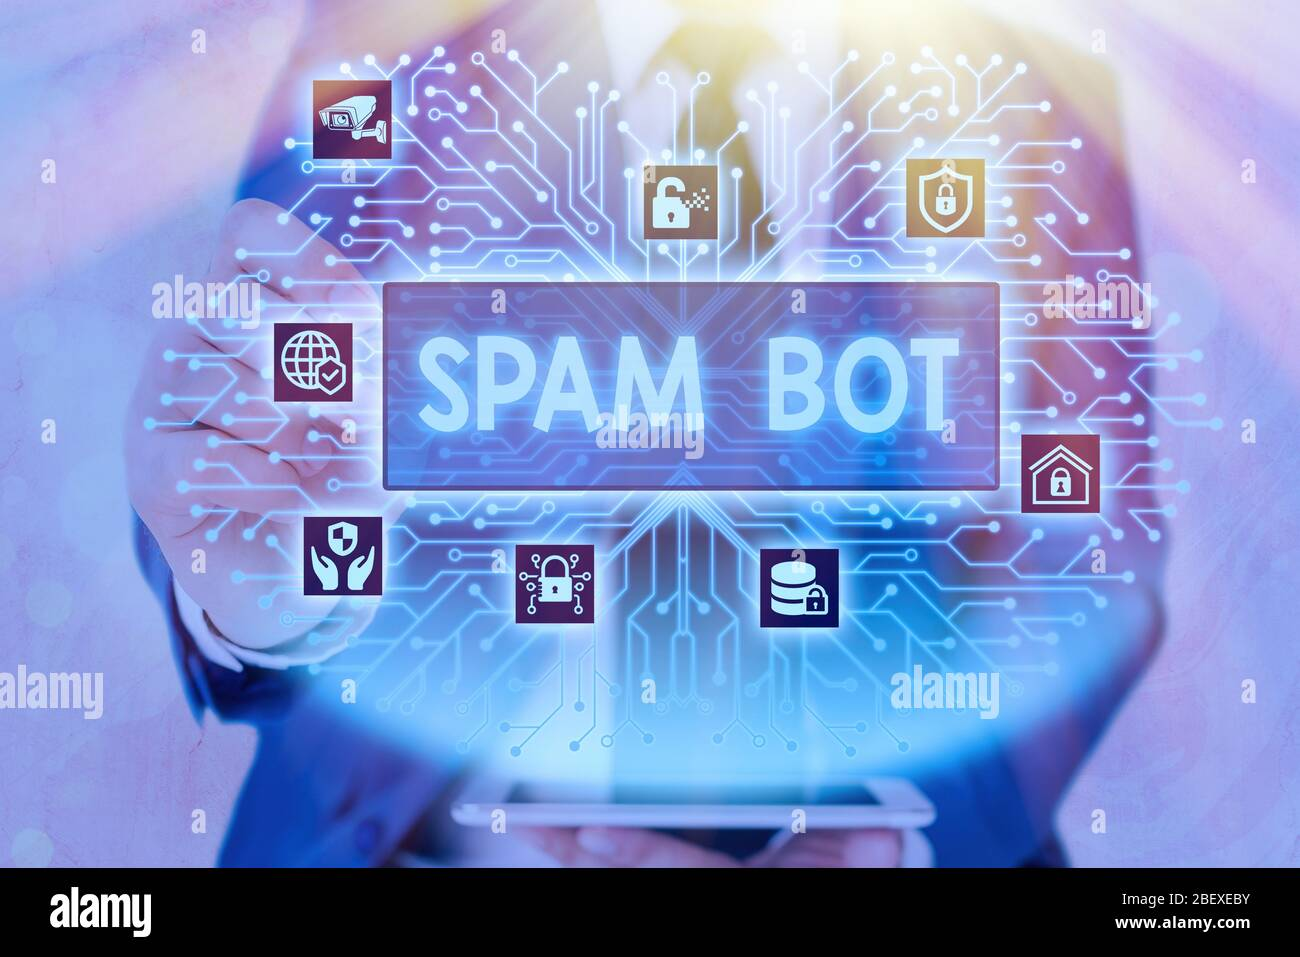 Spam bot text Sms Bomber